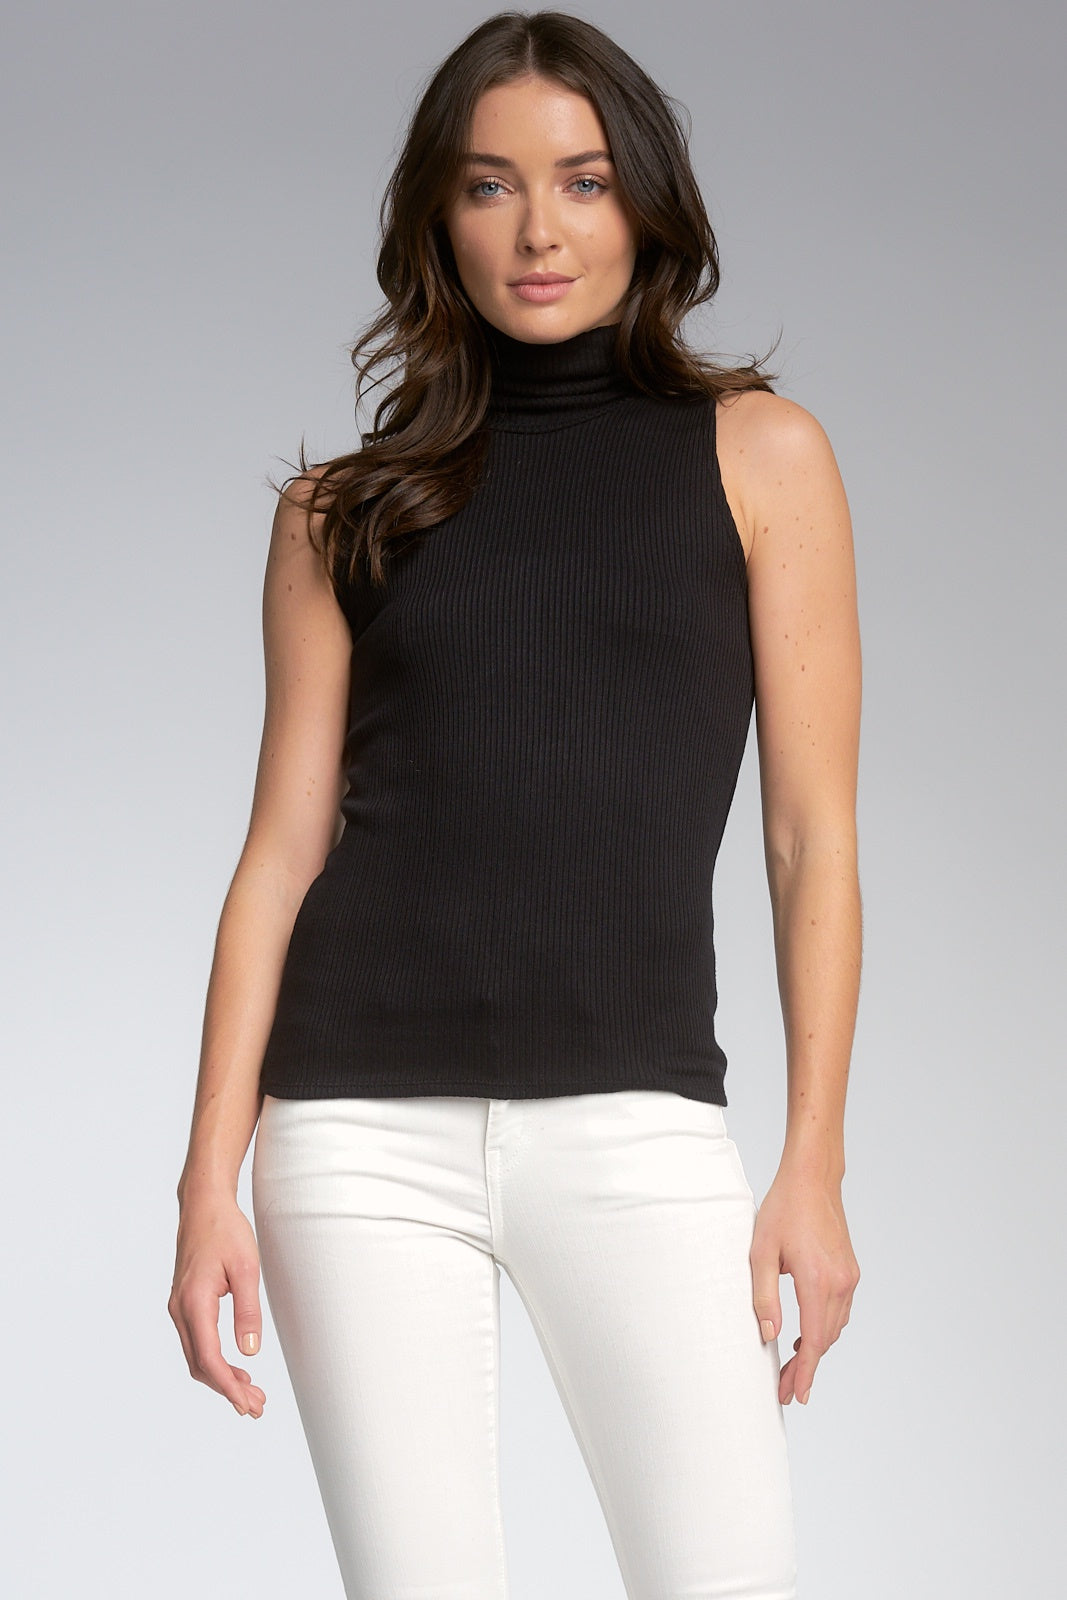 Elan Black Turtleneck Top